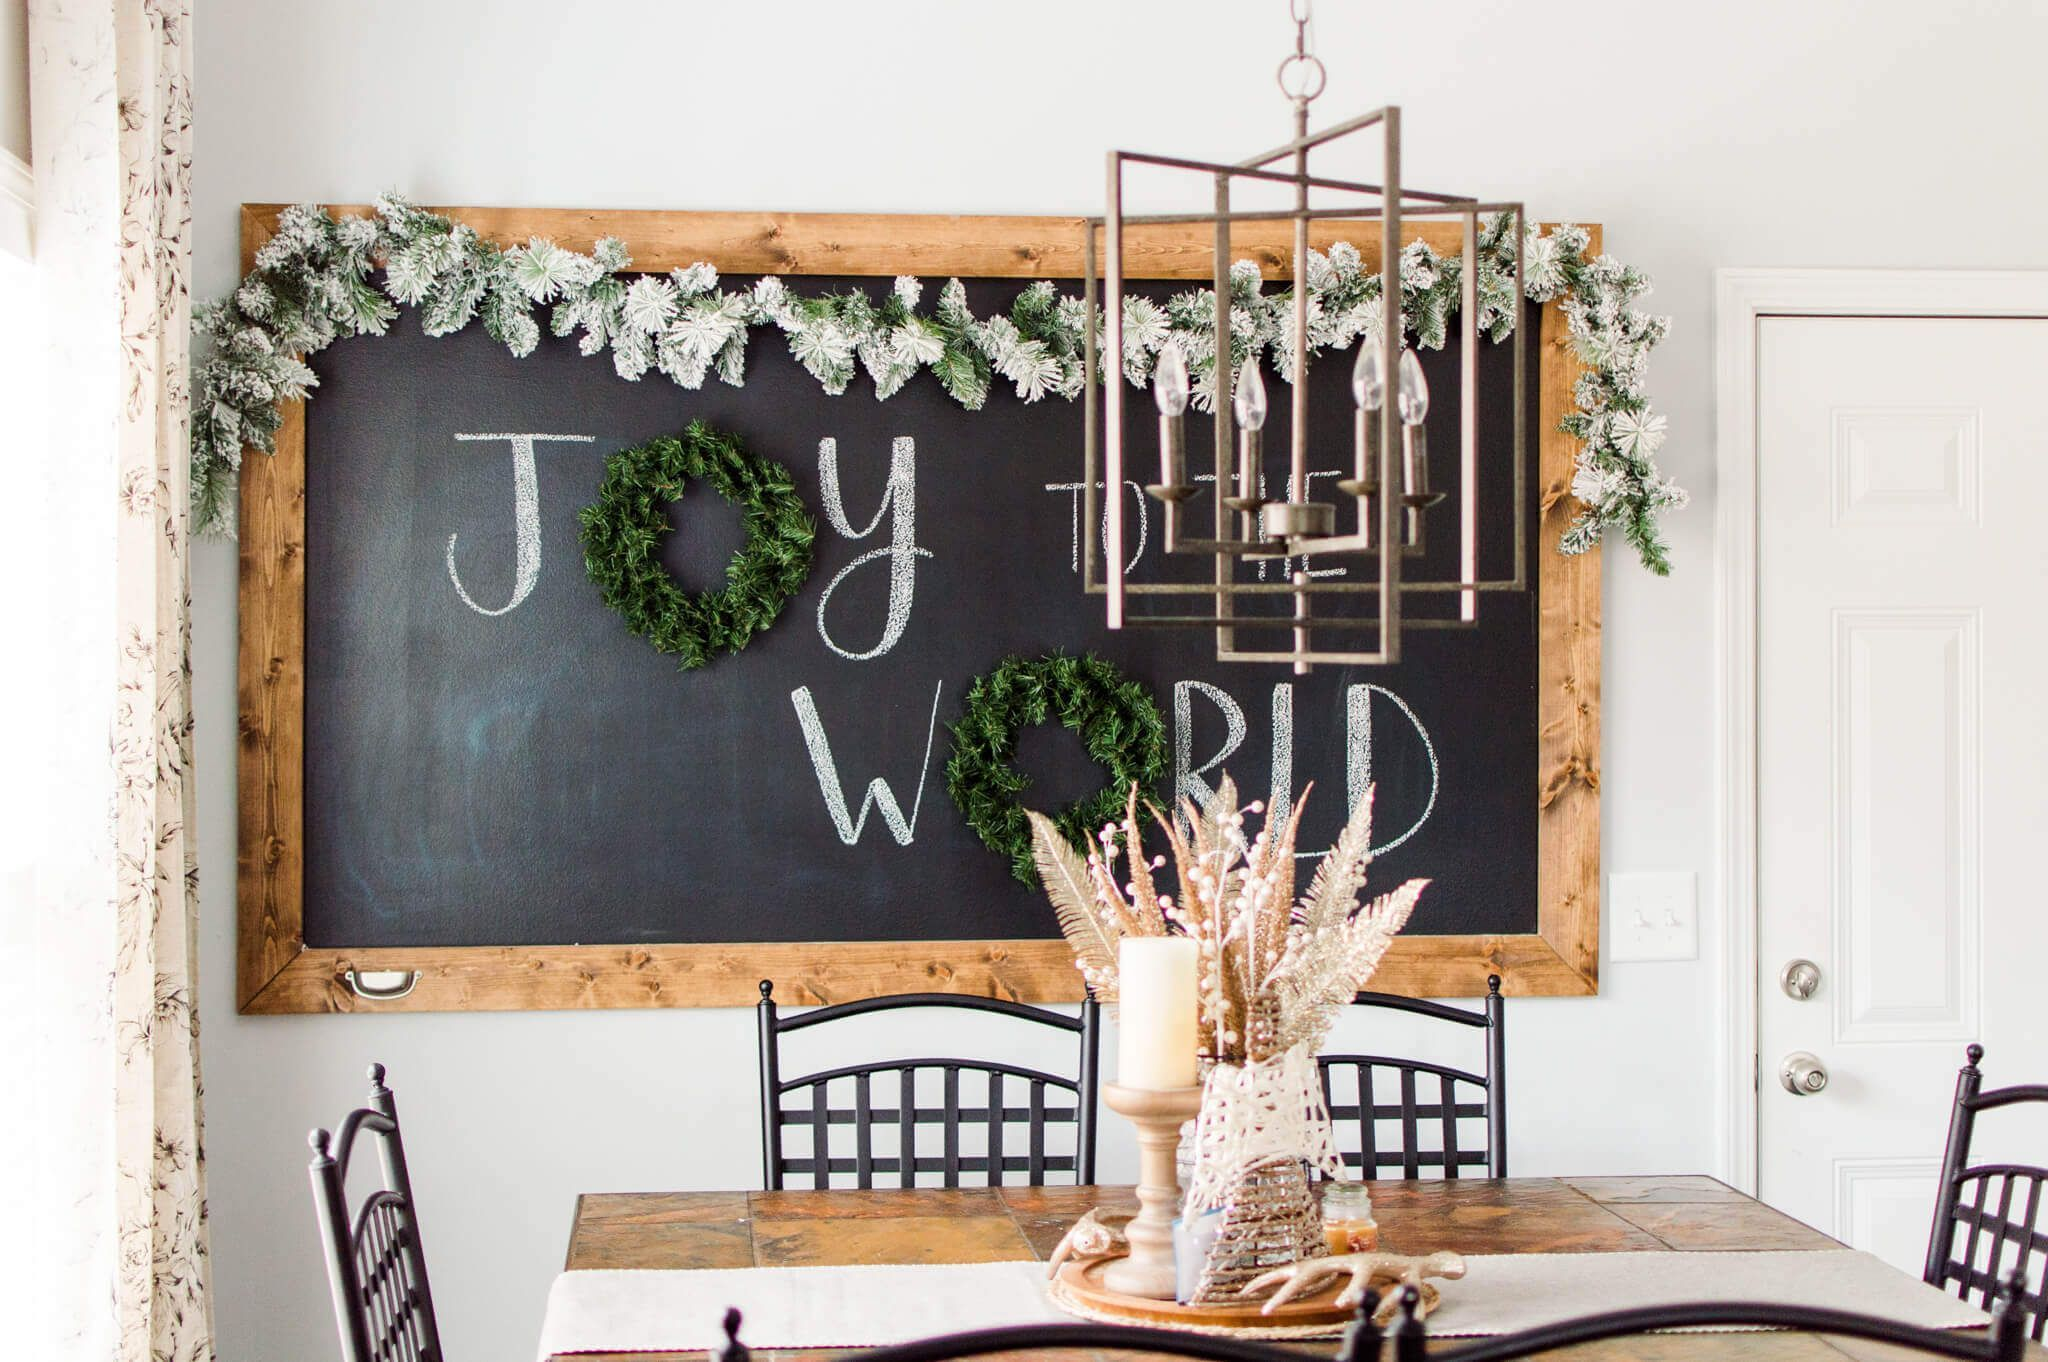 Christmas Chalkboard in the Breakfast Nook #christmaschalkboardartideas Christmas Chalkboard in the Breakfast Nook / ahostinghome.com // christmas chalkboard. christmas chalkboard art. christmas chalkboard signs. christmas chalkboard ideas. christmas chalkboard easy. christmas chalkboard christian. christmas chalkboard DIY. christmas chalkboard quotes. christmas chalkboard wall. christmas chalkboard simple. christmas chalkboard Jesus. christmas chalkboard farmhouse. christmas chalkboard kitchen. #christmaschalkboardartideas